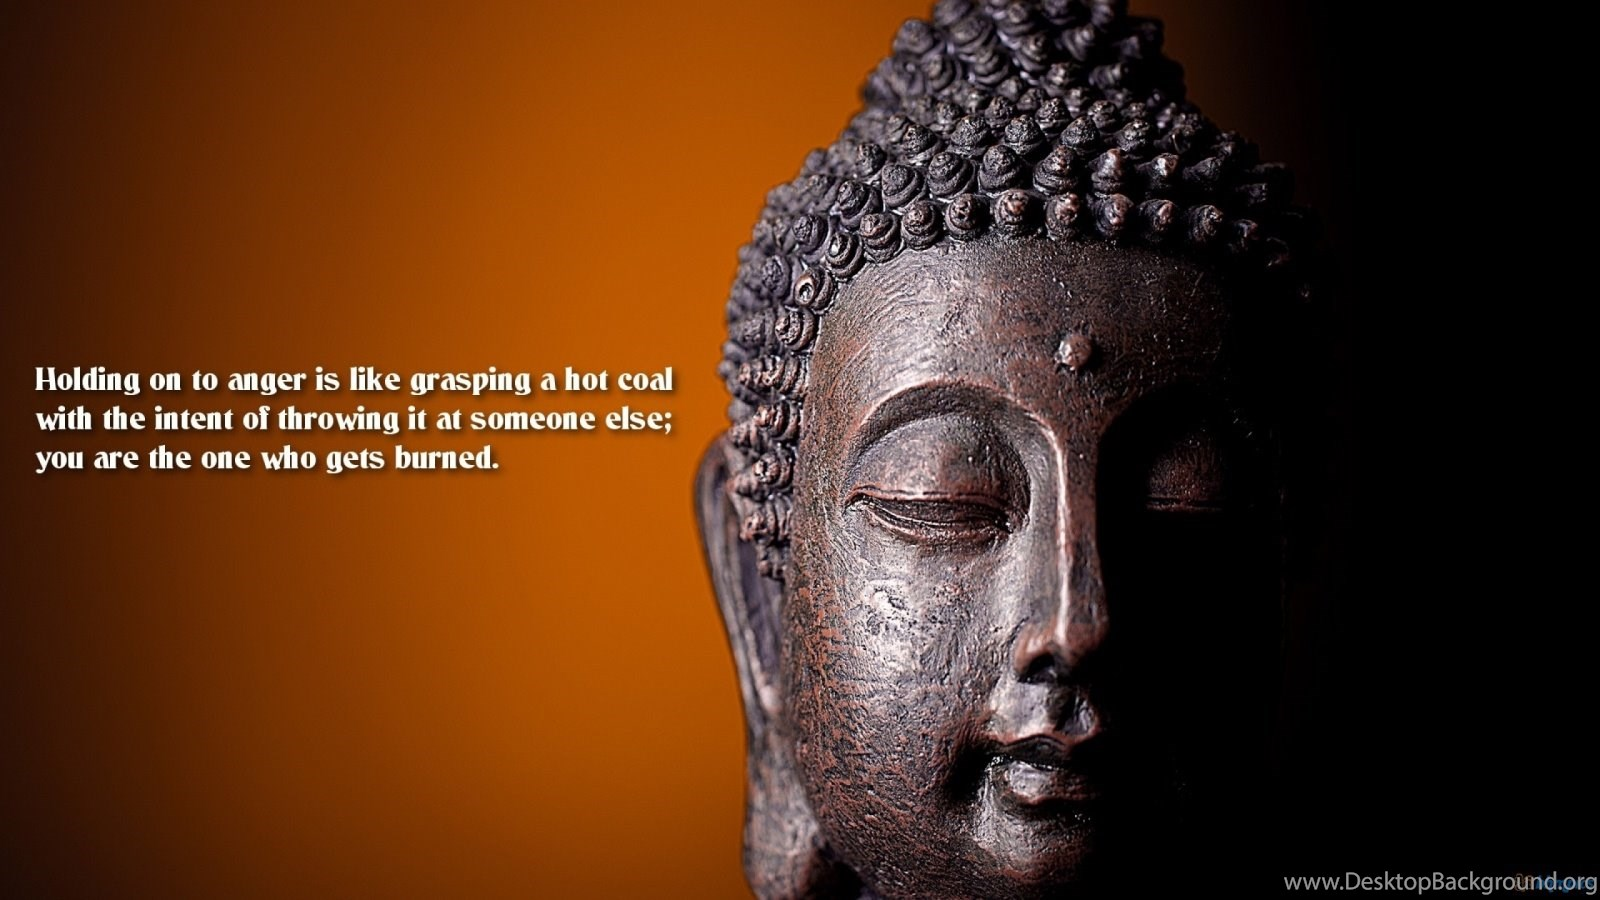 buddha lifestyle hd wallpapers lord buddha wallpapers hd wallpapers